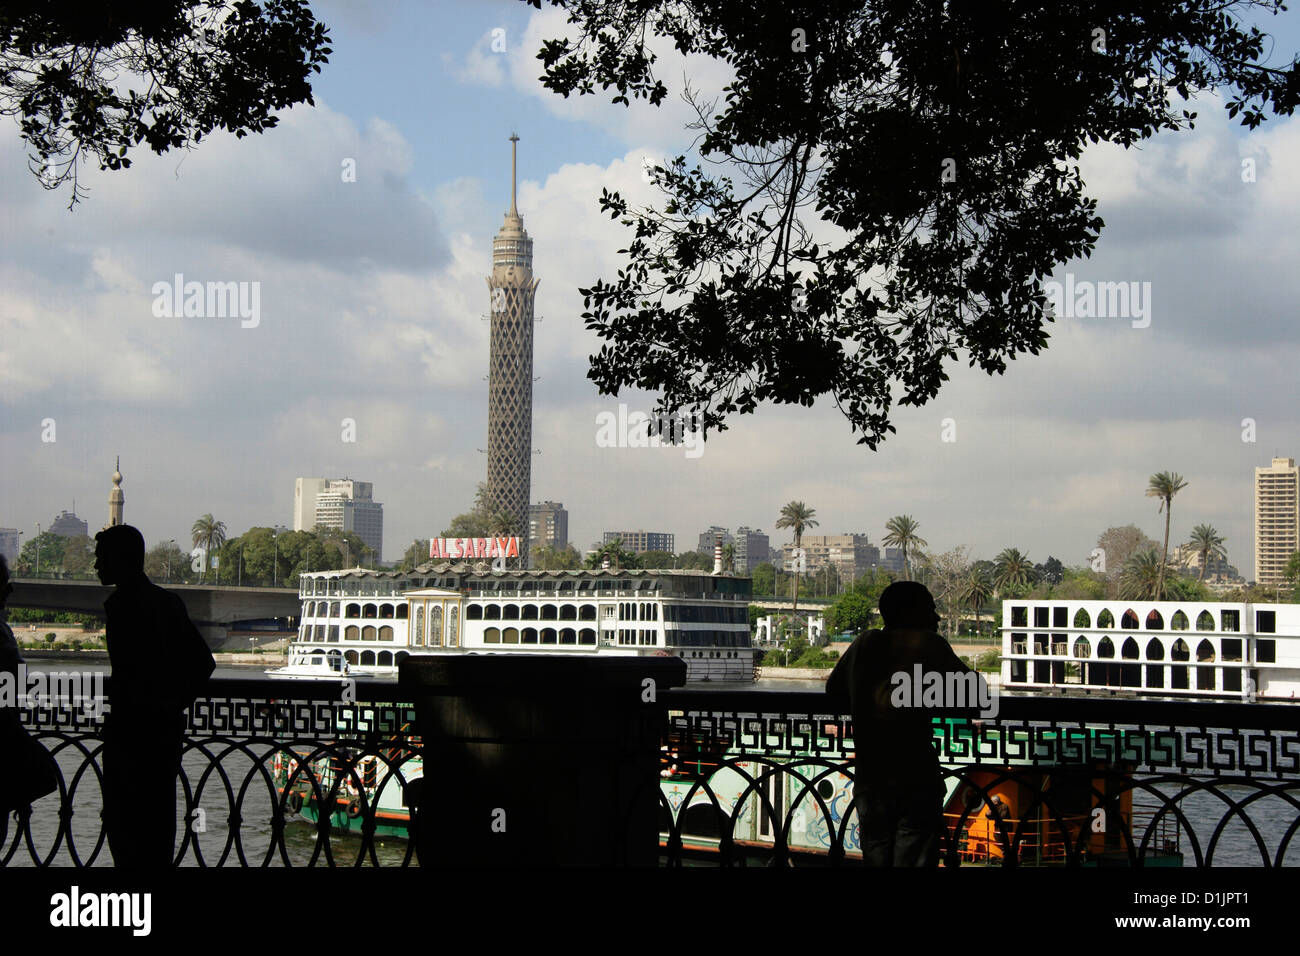 Egypt Cairo Cairo tower and the Nile river side - Stock Image